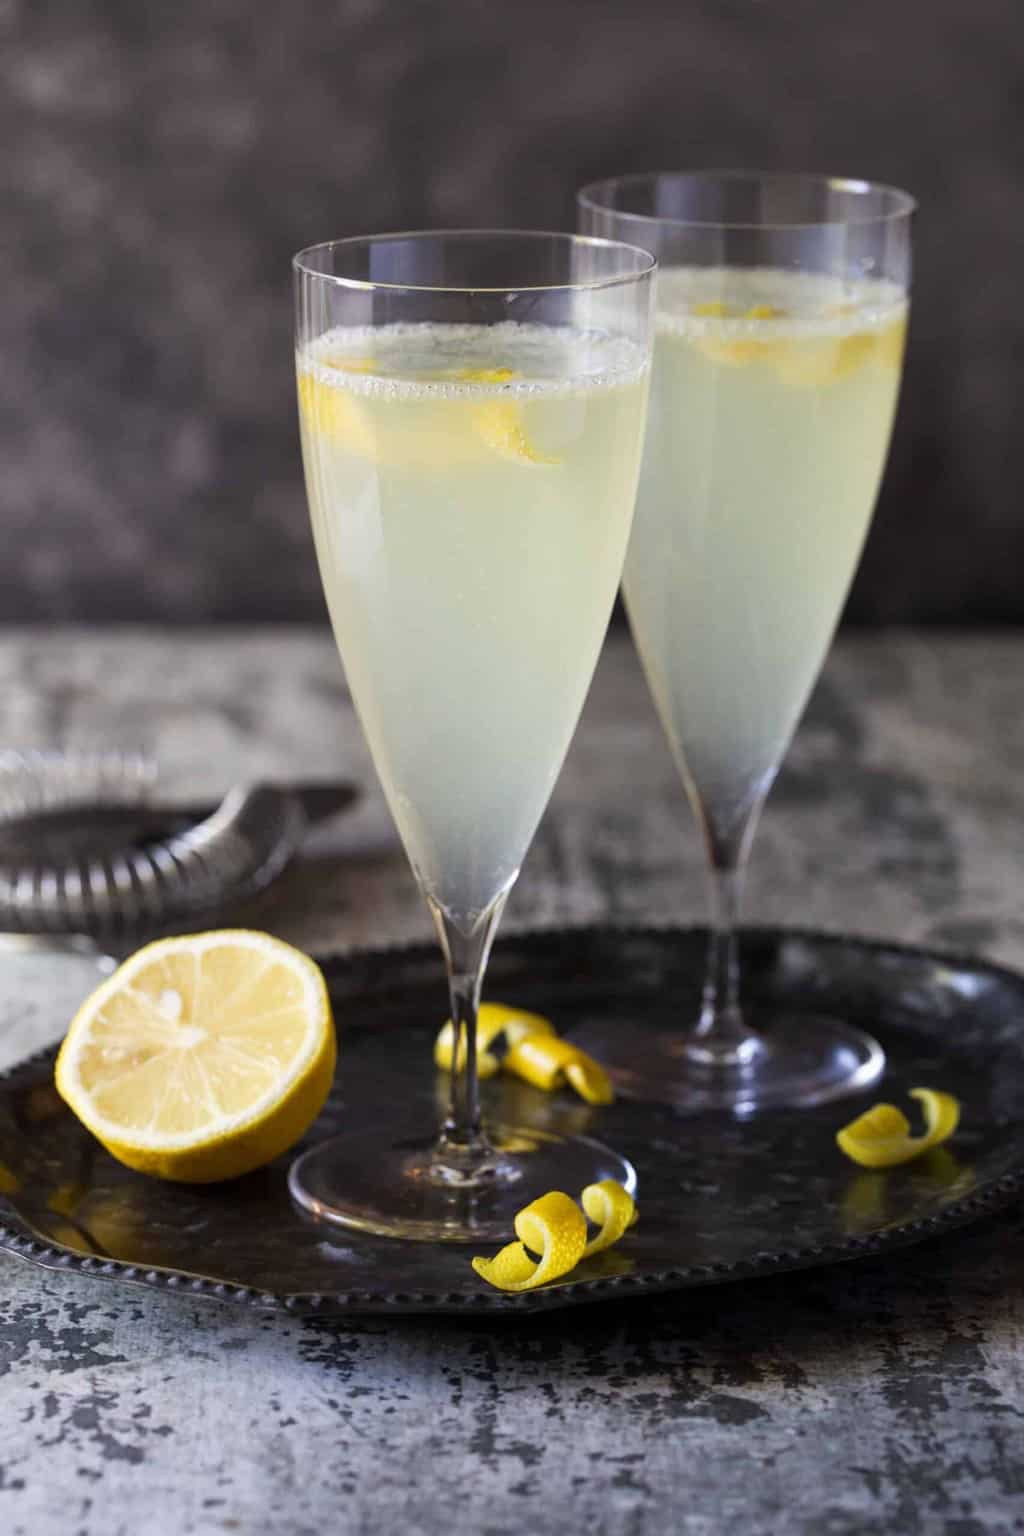 Tall champagne flutes filled with cocktails with lemon slices for garnish.